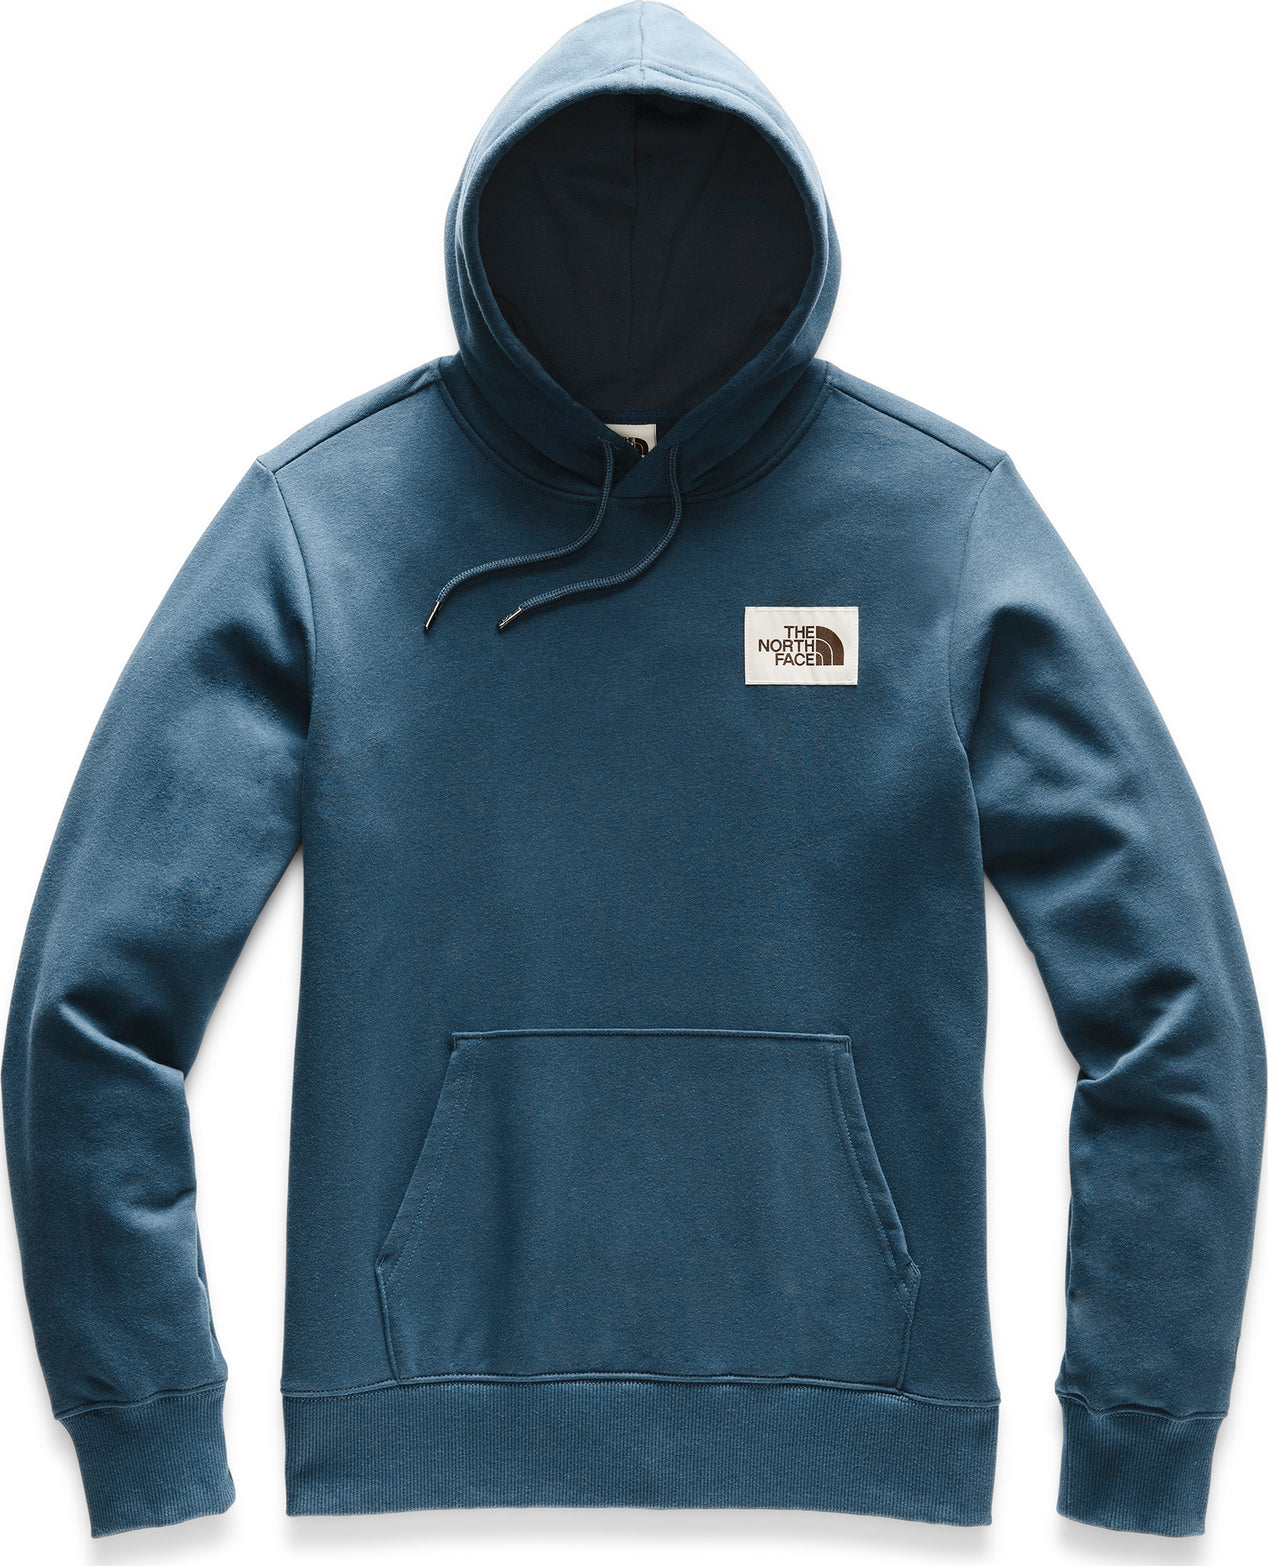 9395cff4c The North Face Patch Pullover Hoodie - Men's